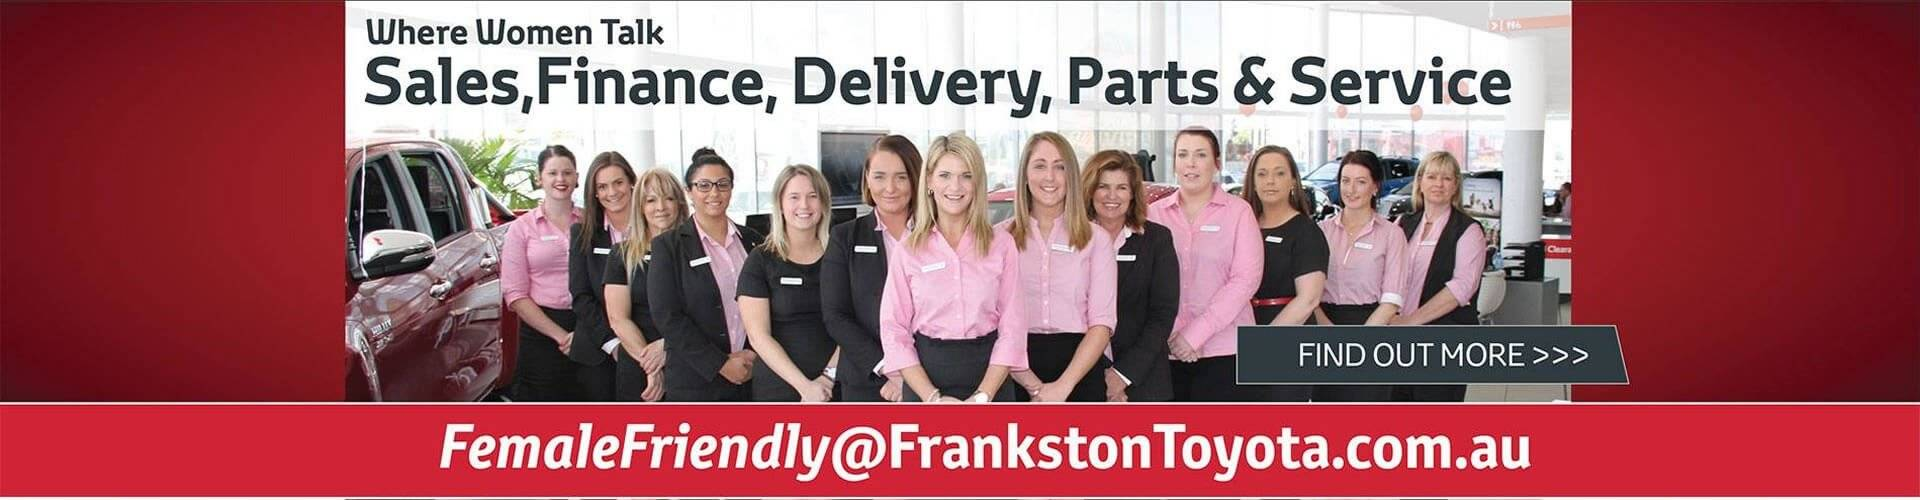 Frankston Toyota Female Friendly